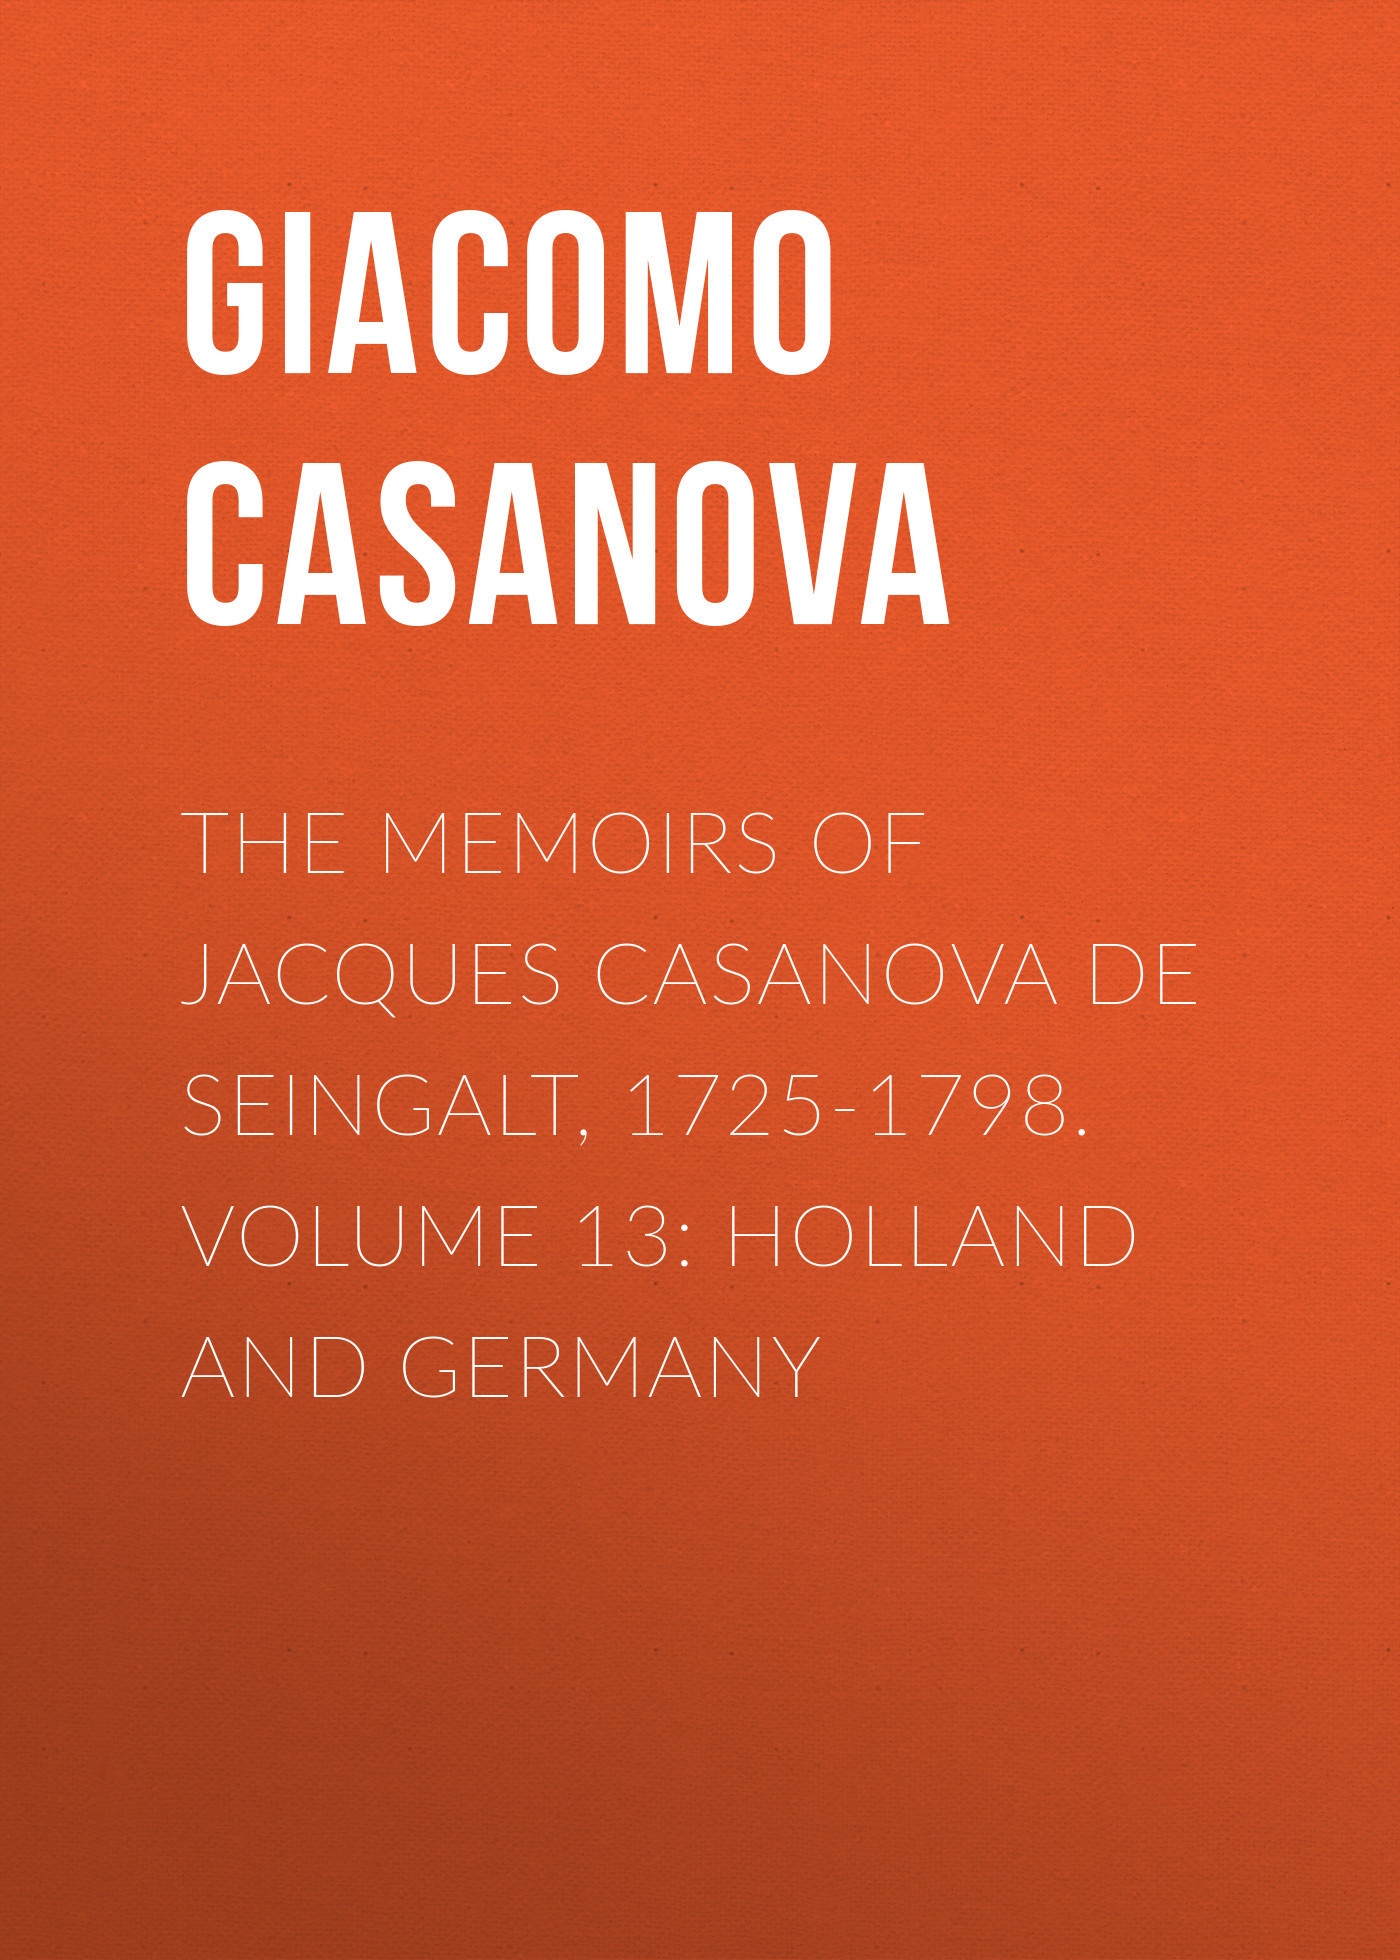 Giacomo Casanova The Memoirs of Jacques Casanova de Seingalt, 1725-1798. Volume 13: Holland and Germany 15 pcs nylon face eye lip makeup brush set page 3